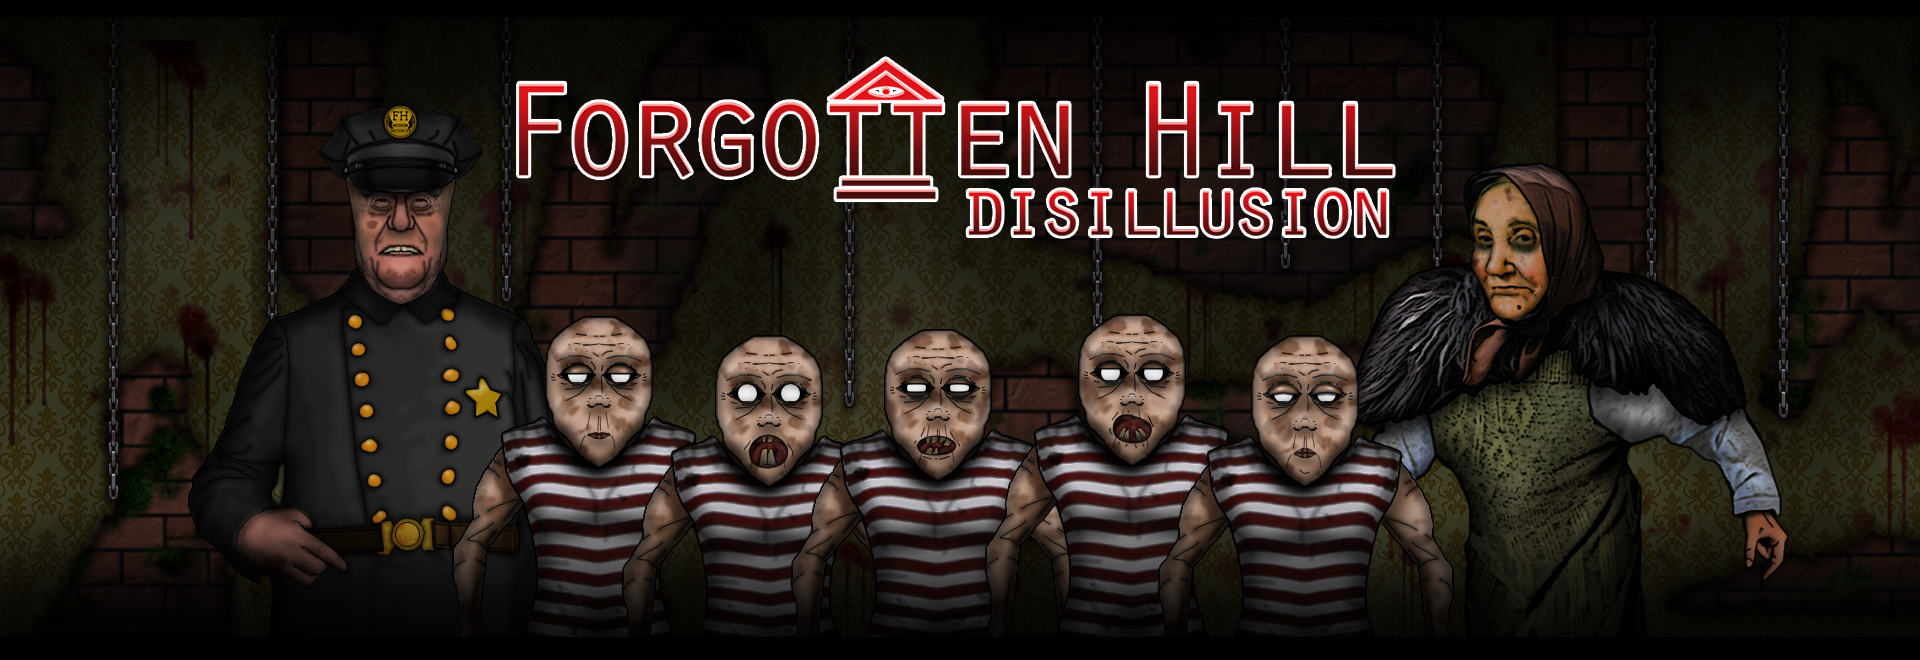 Forgotten Hill Disillusion Demo